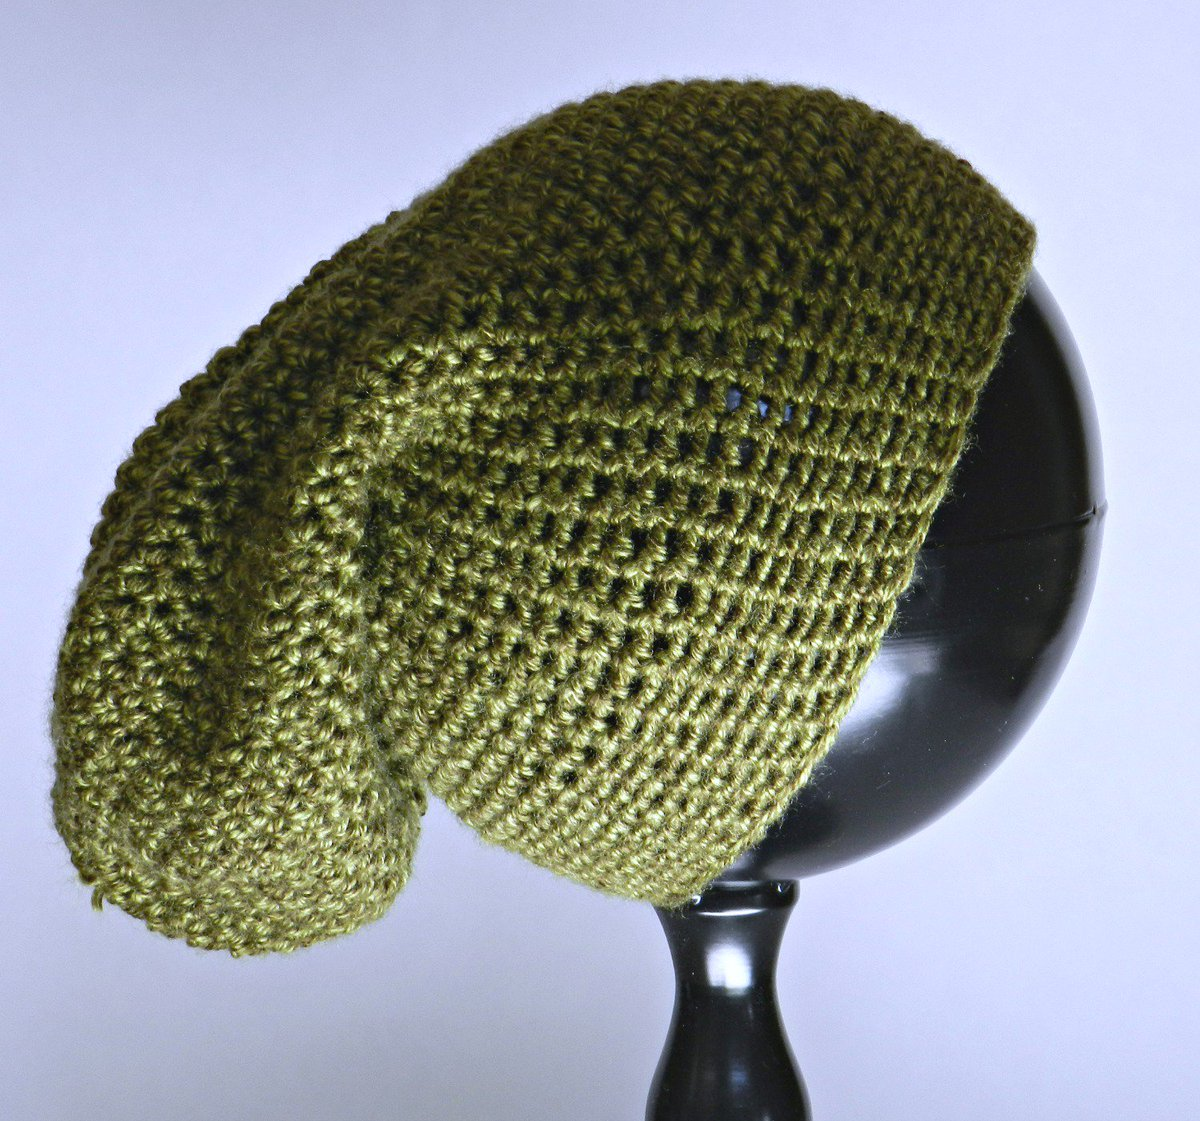 Excited to share this slouch hat from my etsy shop  Olive Green Crocheted Slouchy  Beanie https   etsy.me 2y6bTin  cozyatoz  olivegreenhat  slouchybeanie ... 0675370af07a